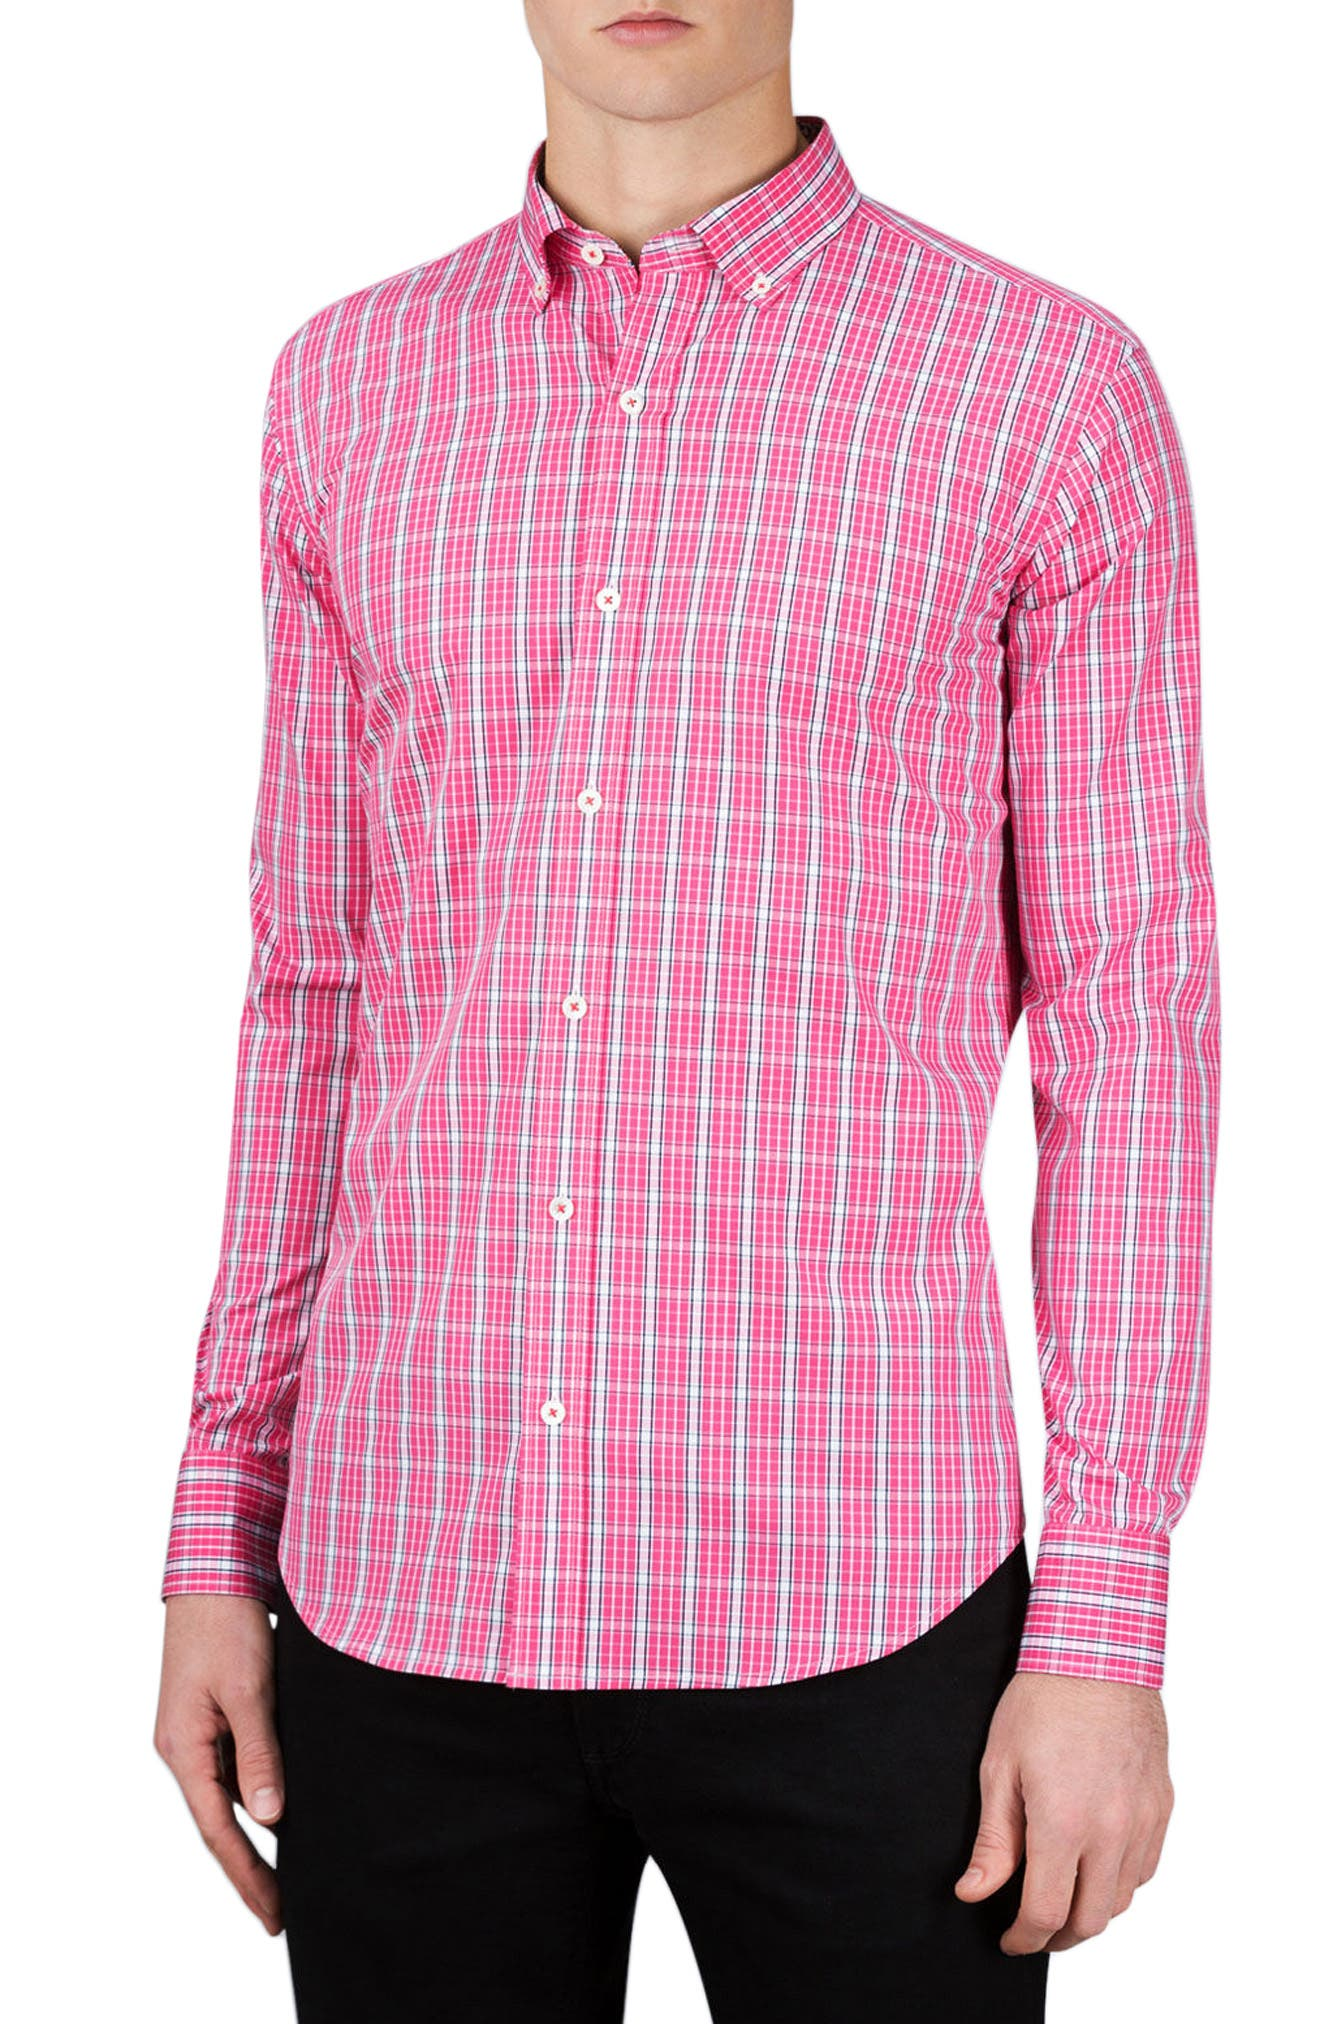 Alternate Image 1 Selected - Bugatchi Classic Fit Grid Print Sport Shirt